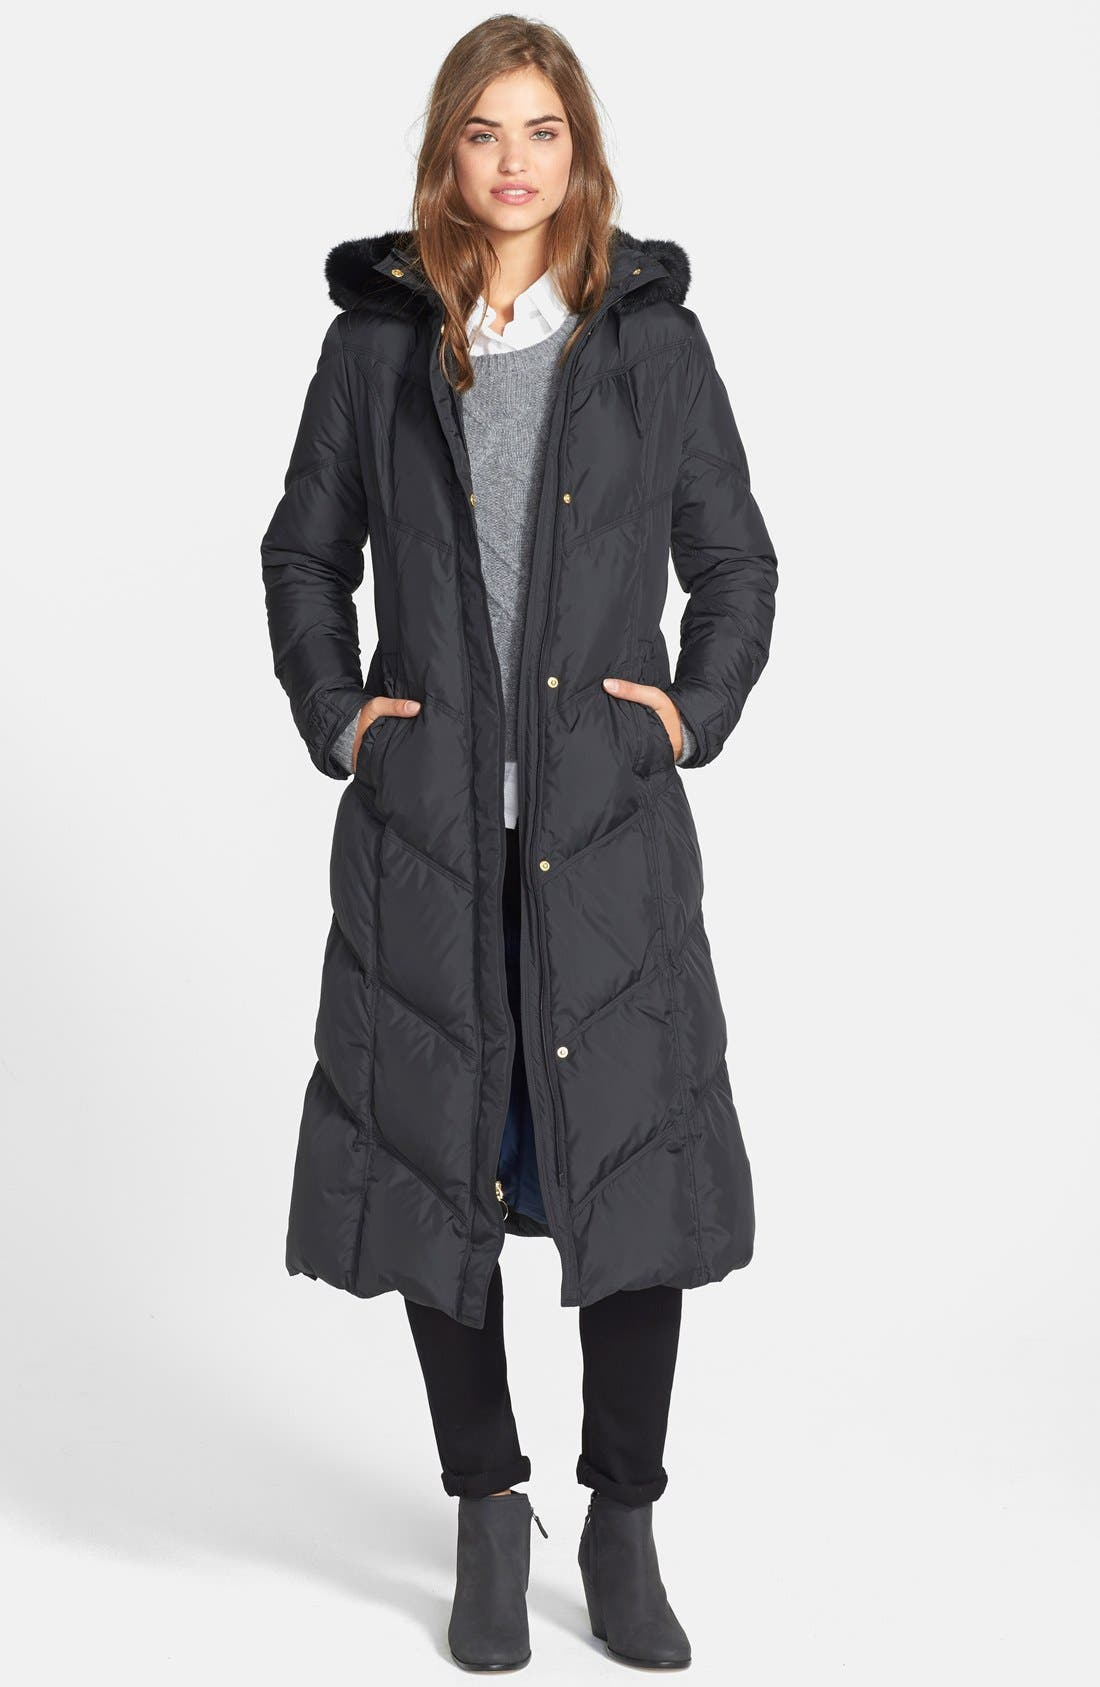 Main Image - T Tahari 'Camy' Long Hooded Down Coat with Genuine Rabbit Fur Trim (Online Only)